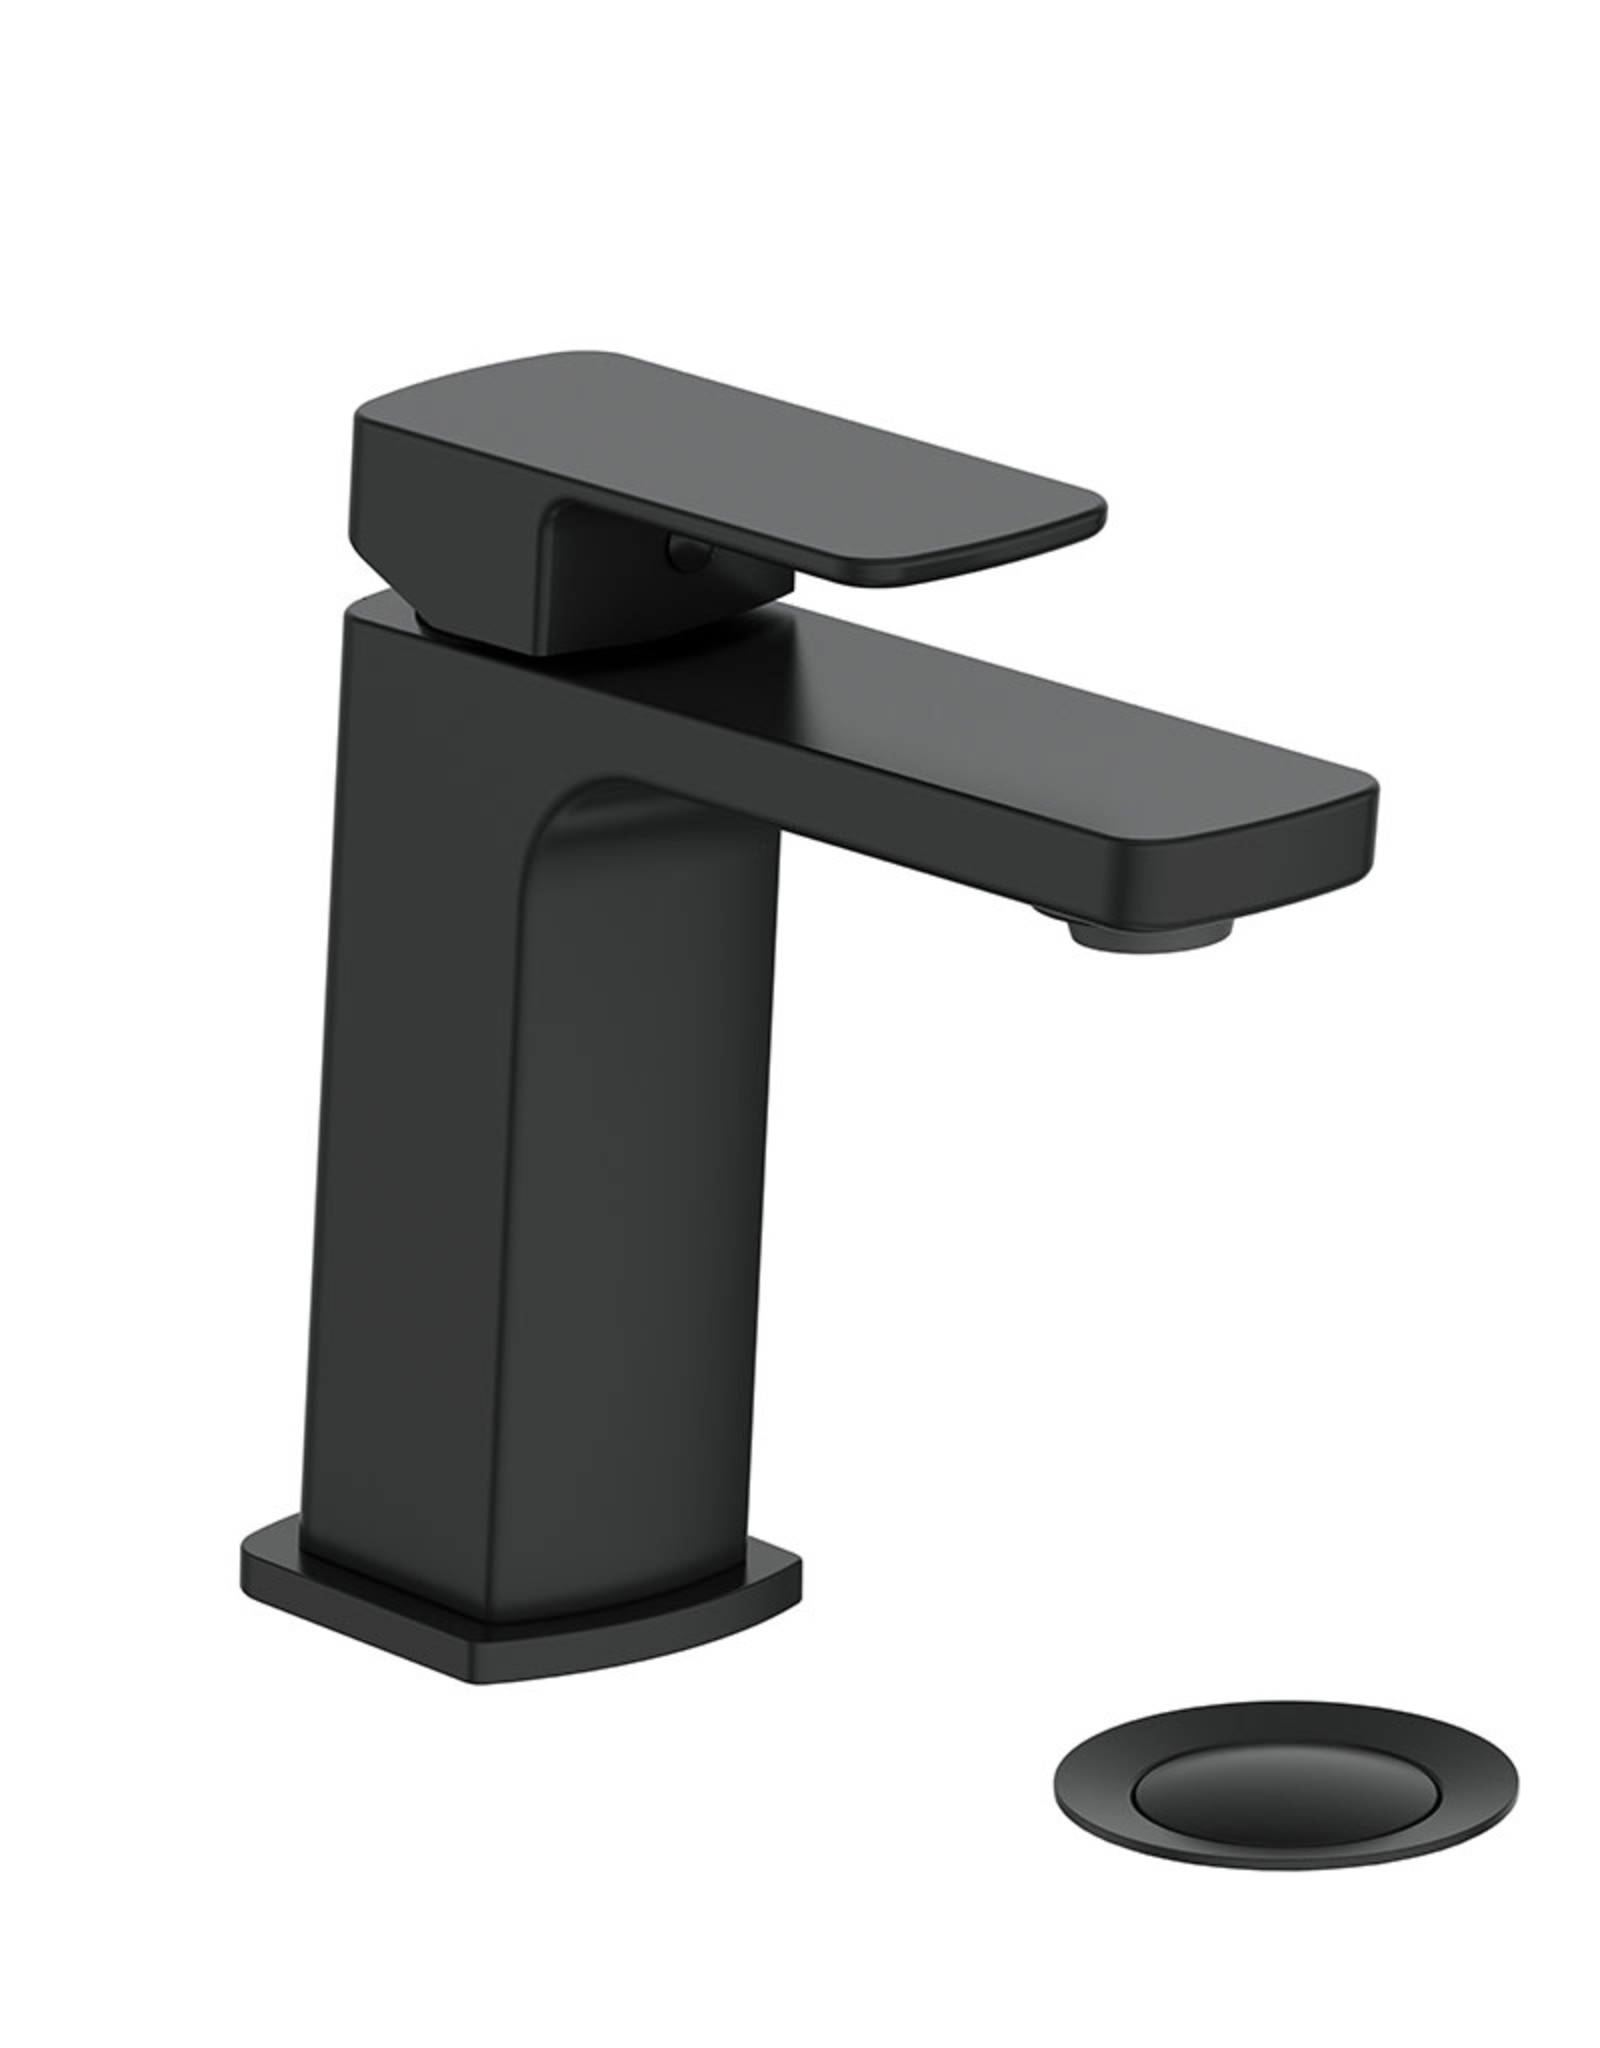 Vogt VOGT - NIVEAU MATTE BLACK SINGLE LAVATORY FAUCET w/ POP-UP DRAIN